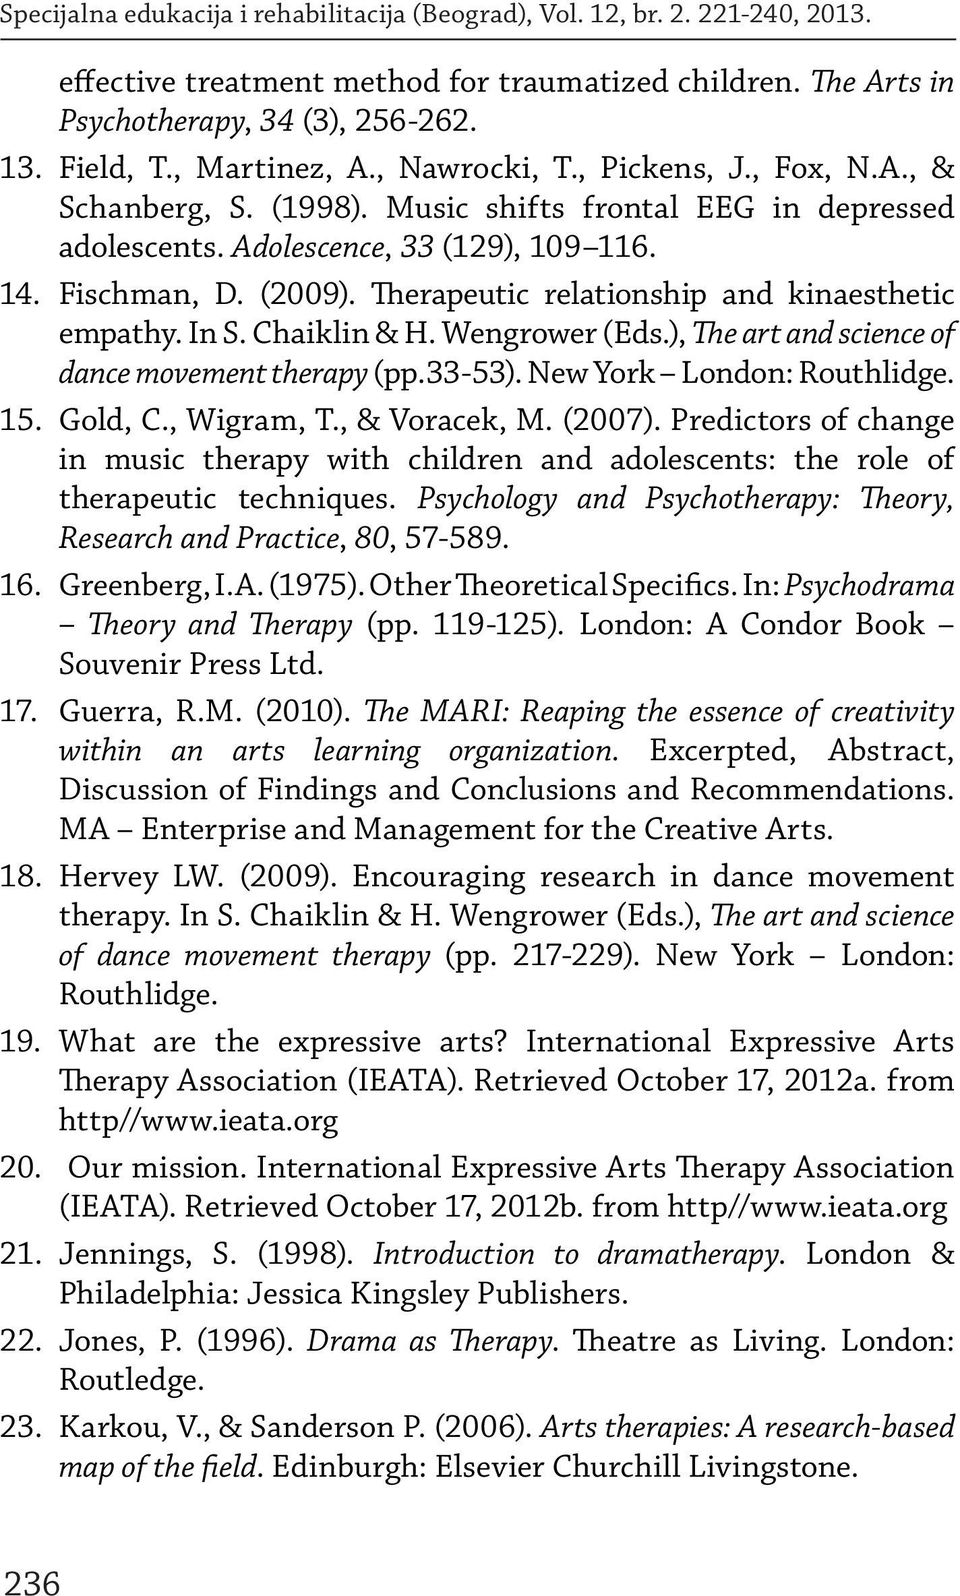 Therapeutic relationship and kinaesthetic empathy. In S. Chaiklin & H. Wengrower (Eds.), The art and science of dance movement therapy (pp.33-53). New York London: Routhlidge. 15. Gold, C., Wigram, T.